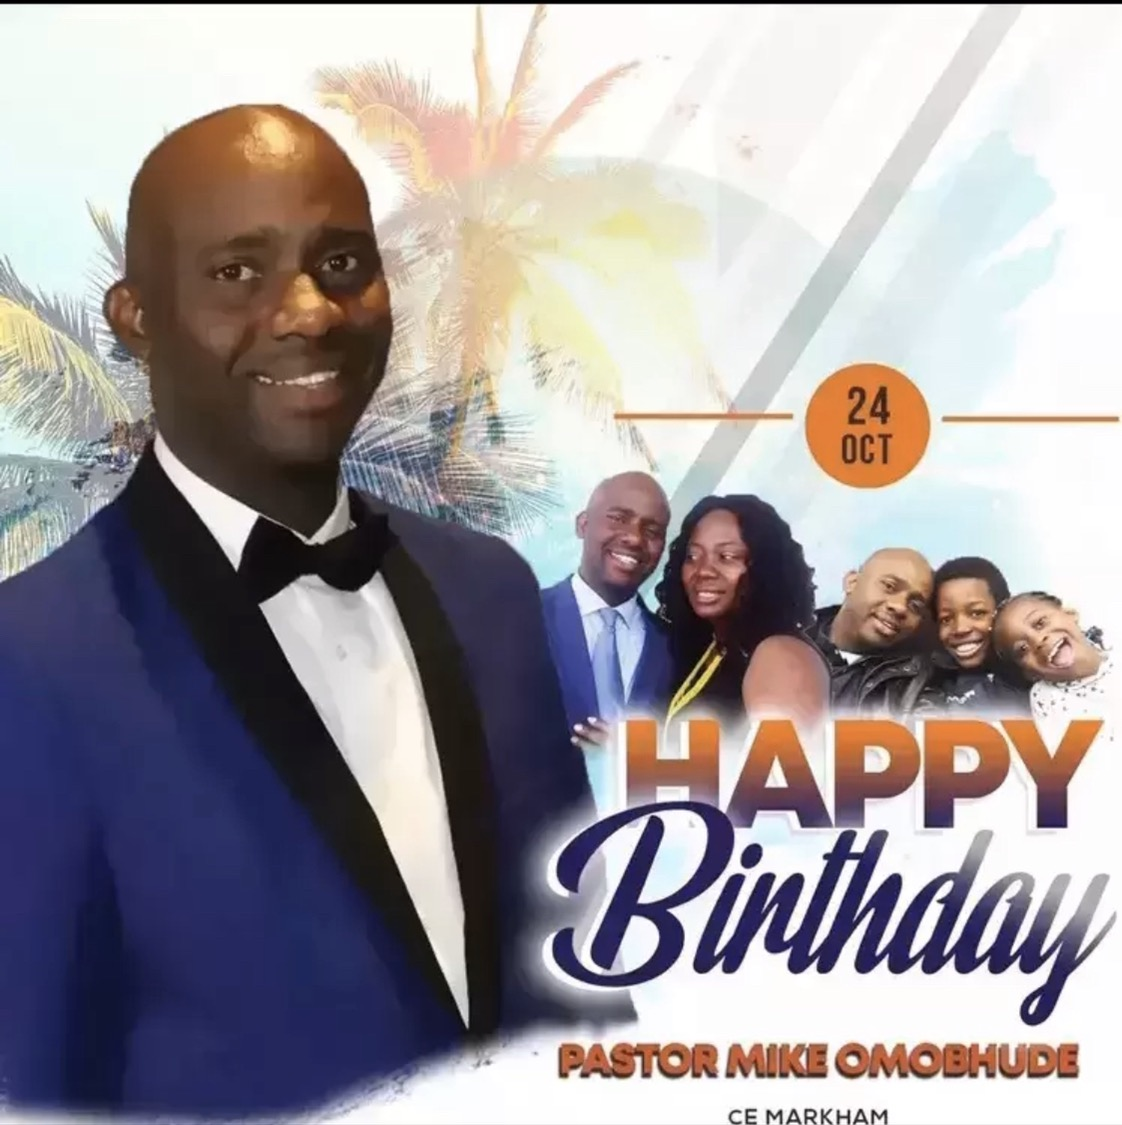 Happy Birthday dear Pastor Mike.